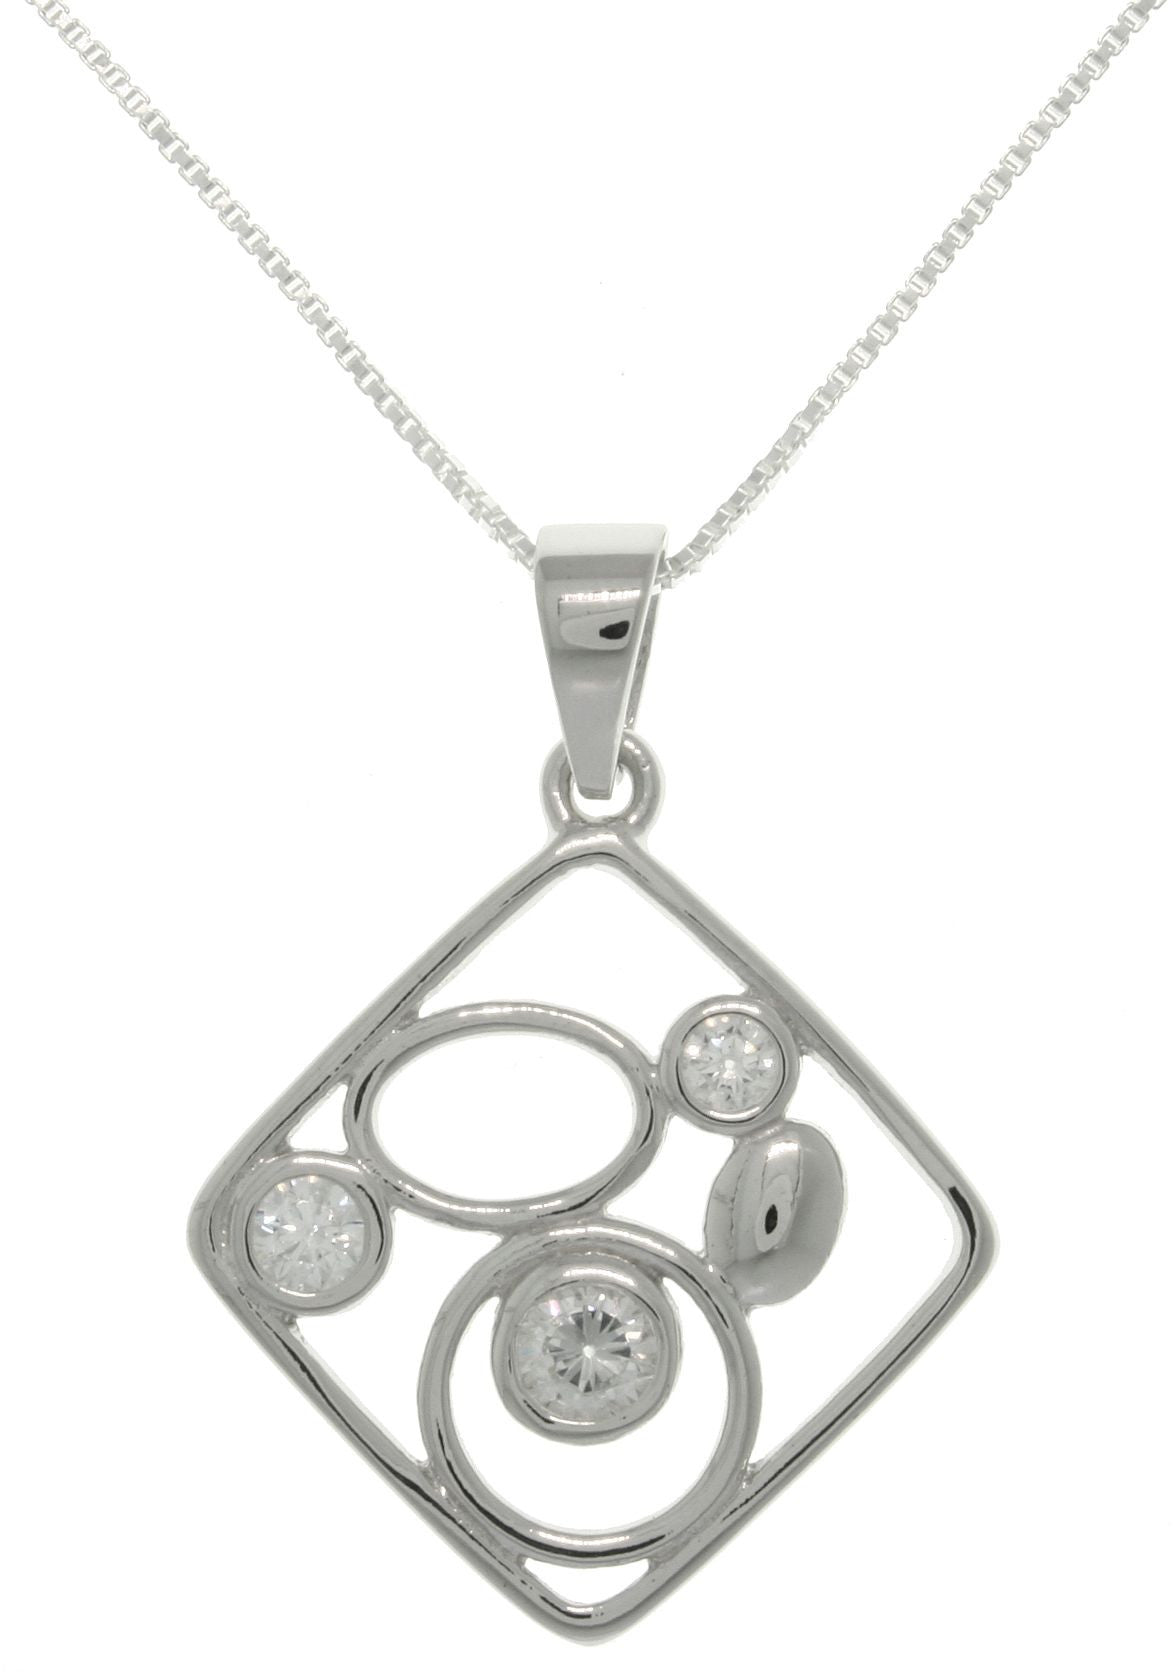 Jewelry Trends Sterling Silver Square Shape Geometric Pendant with CZ on Box Chain Necklace